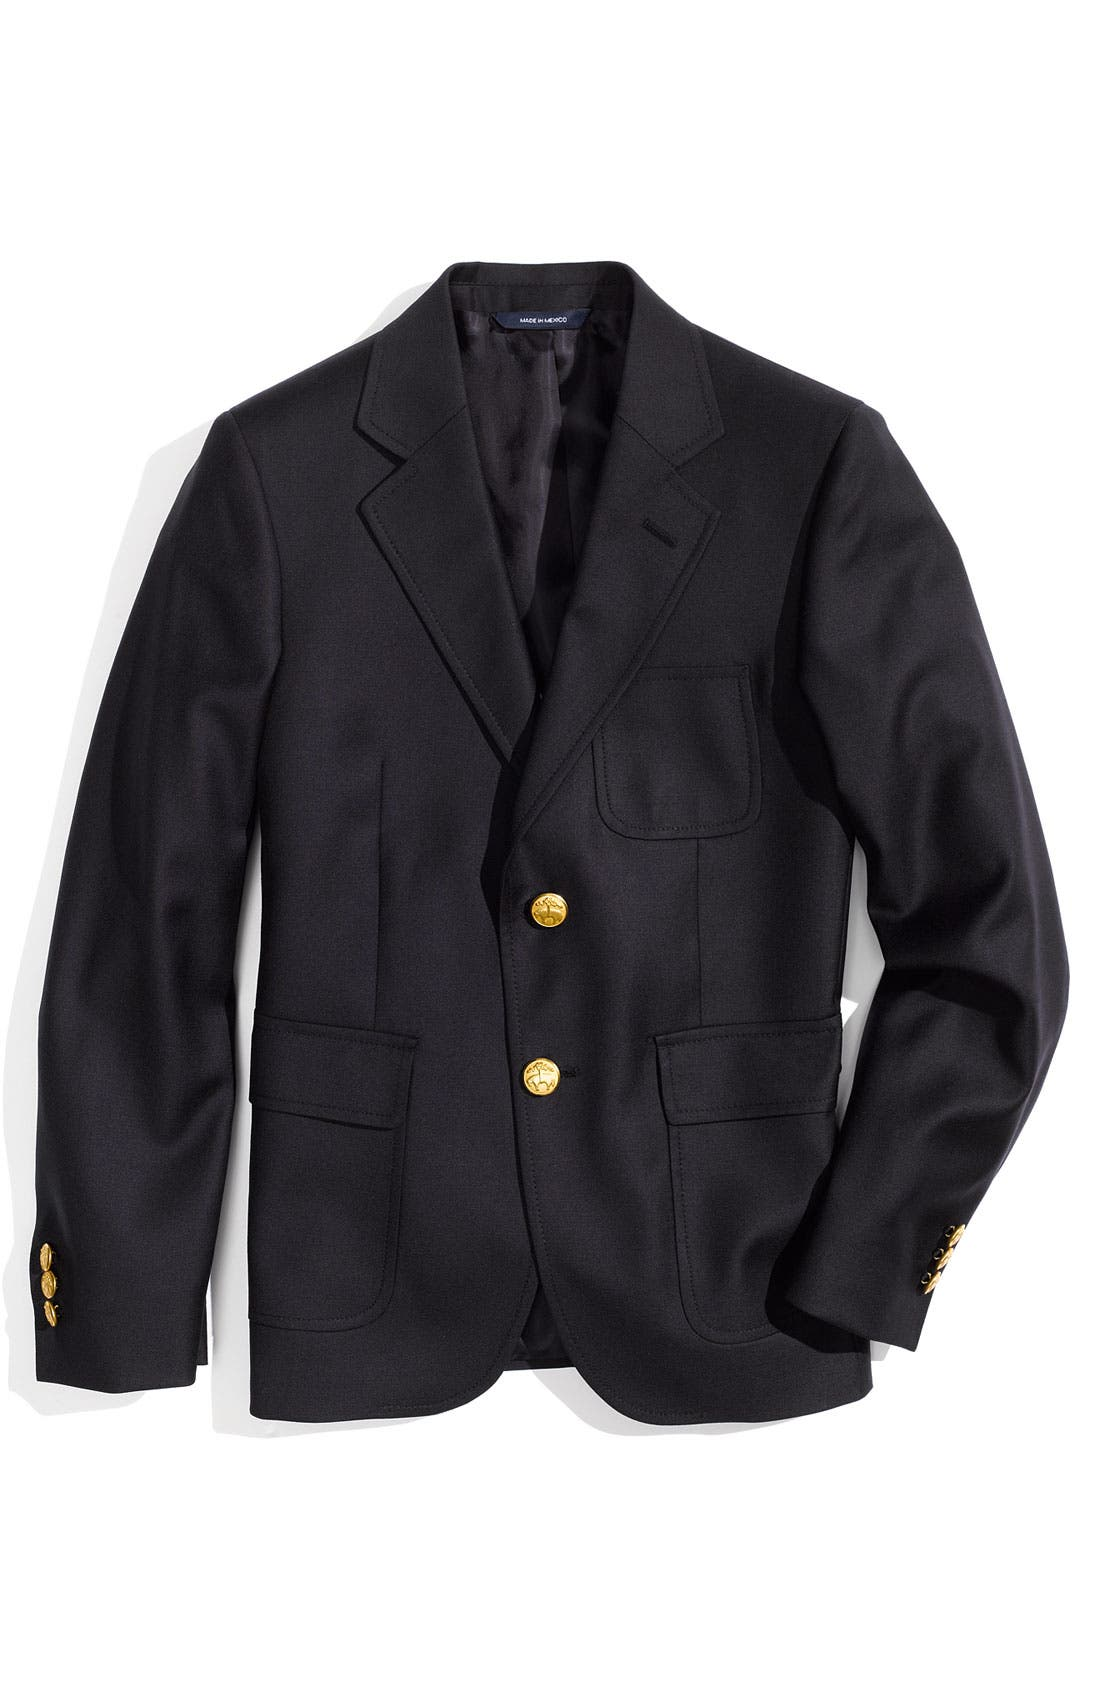 Alternate Image 1 Selected - Brooks Brothers Wool Blazer (Big Boys)